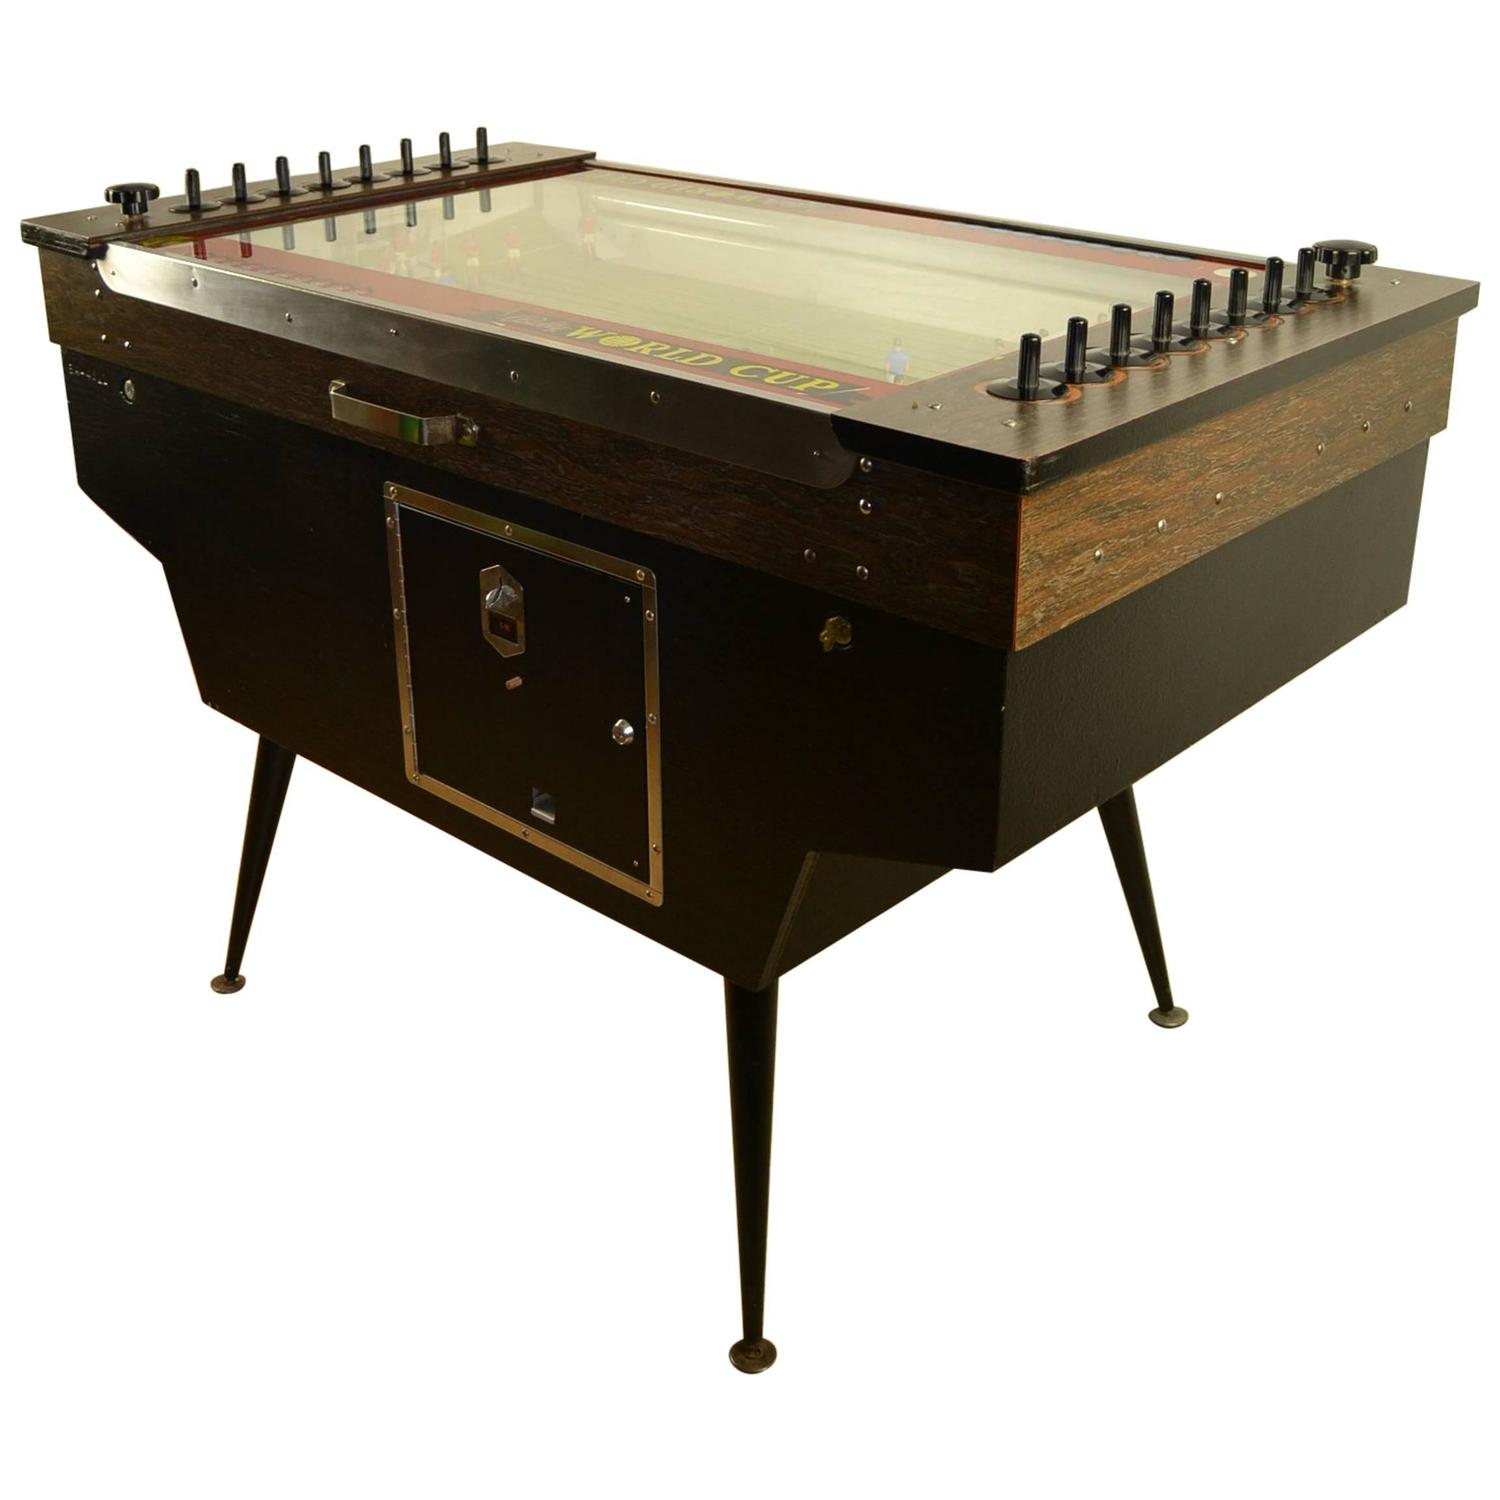 Bally 1968 World Cup Soccer Game Table For Sale at 1stdibs